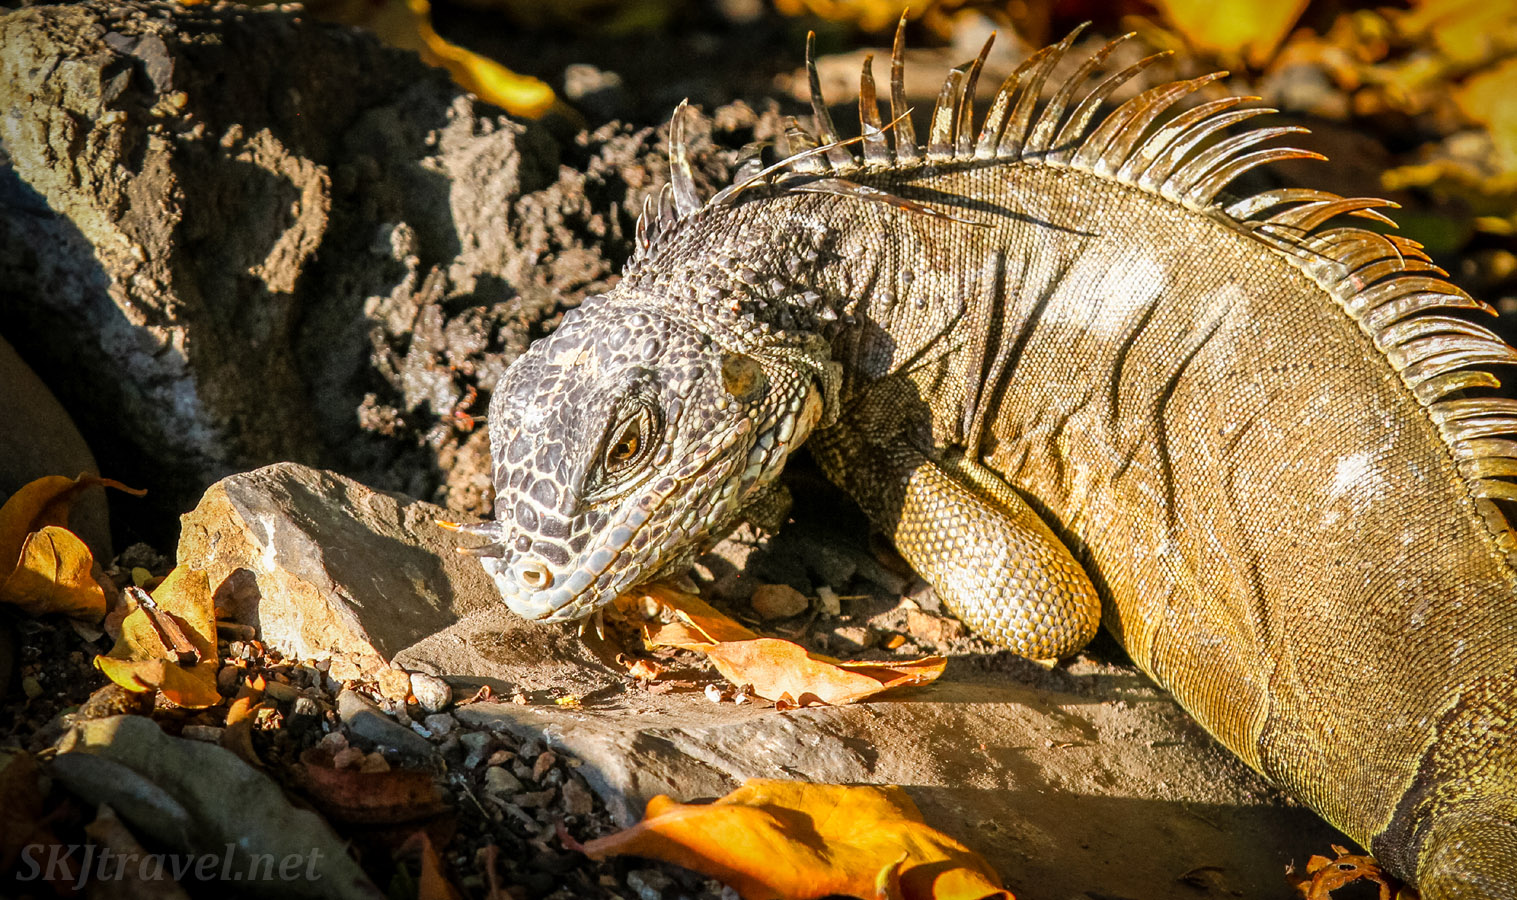 Male iguana with intense look in his eye. Popoyote Lagoon crocodile reserve, Playa Linda, Ixtapa, Mexico.